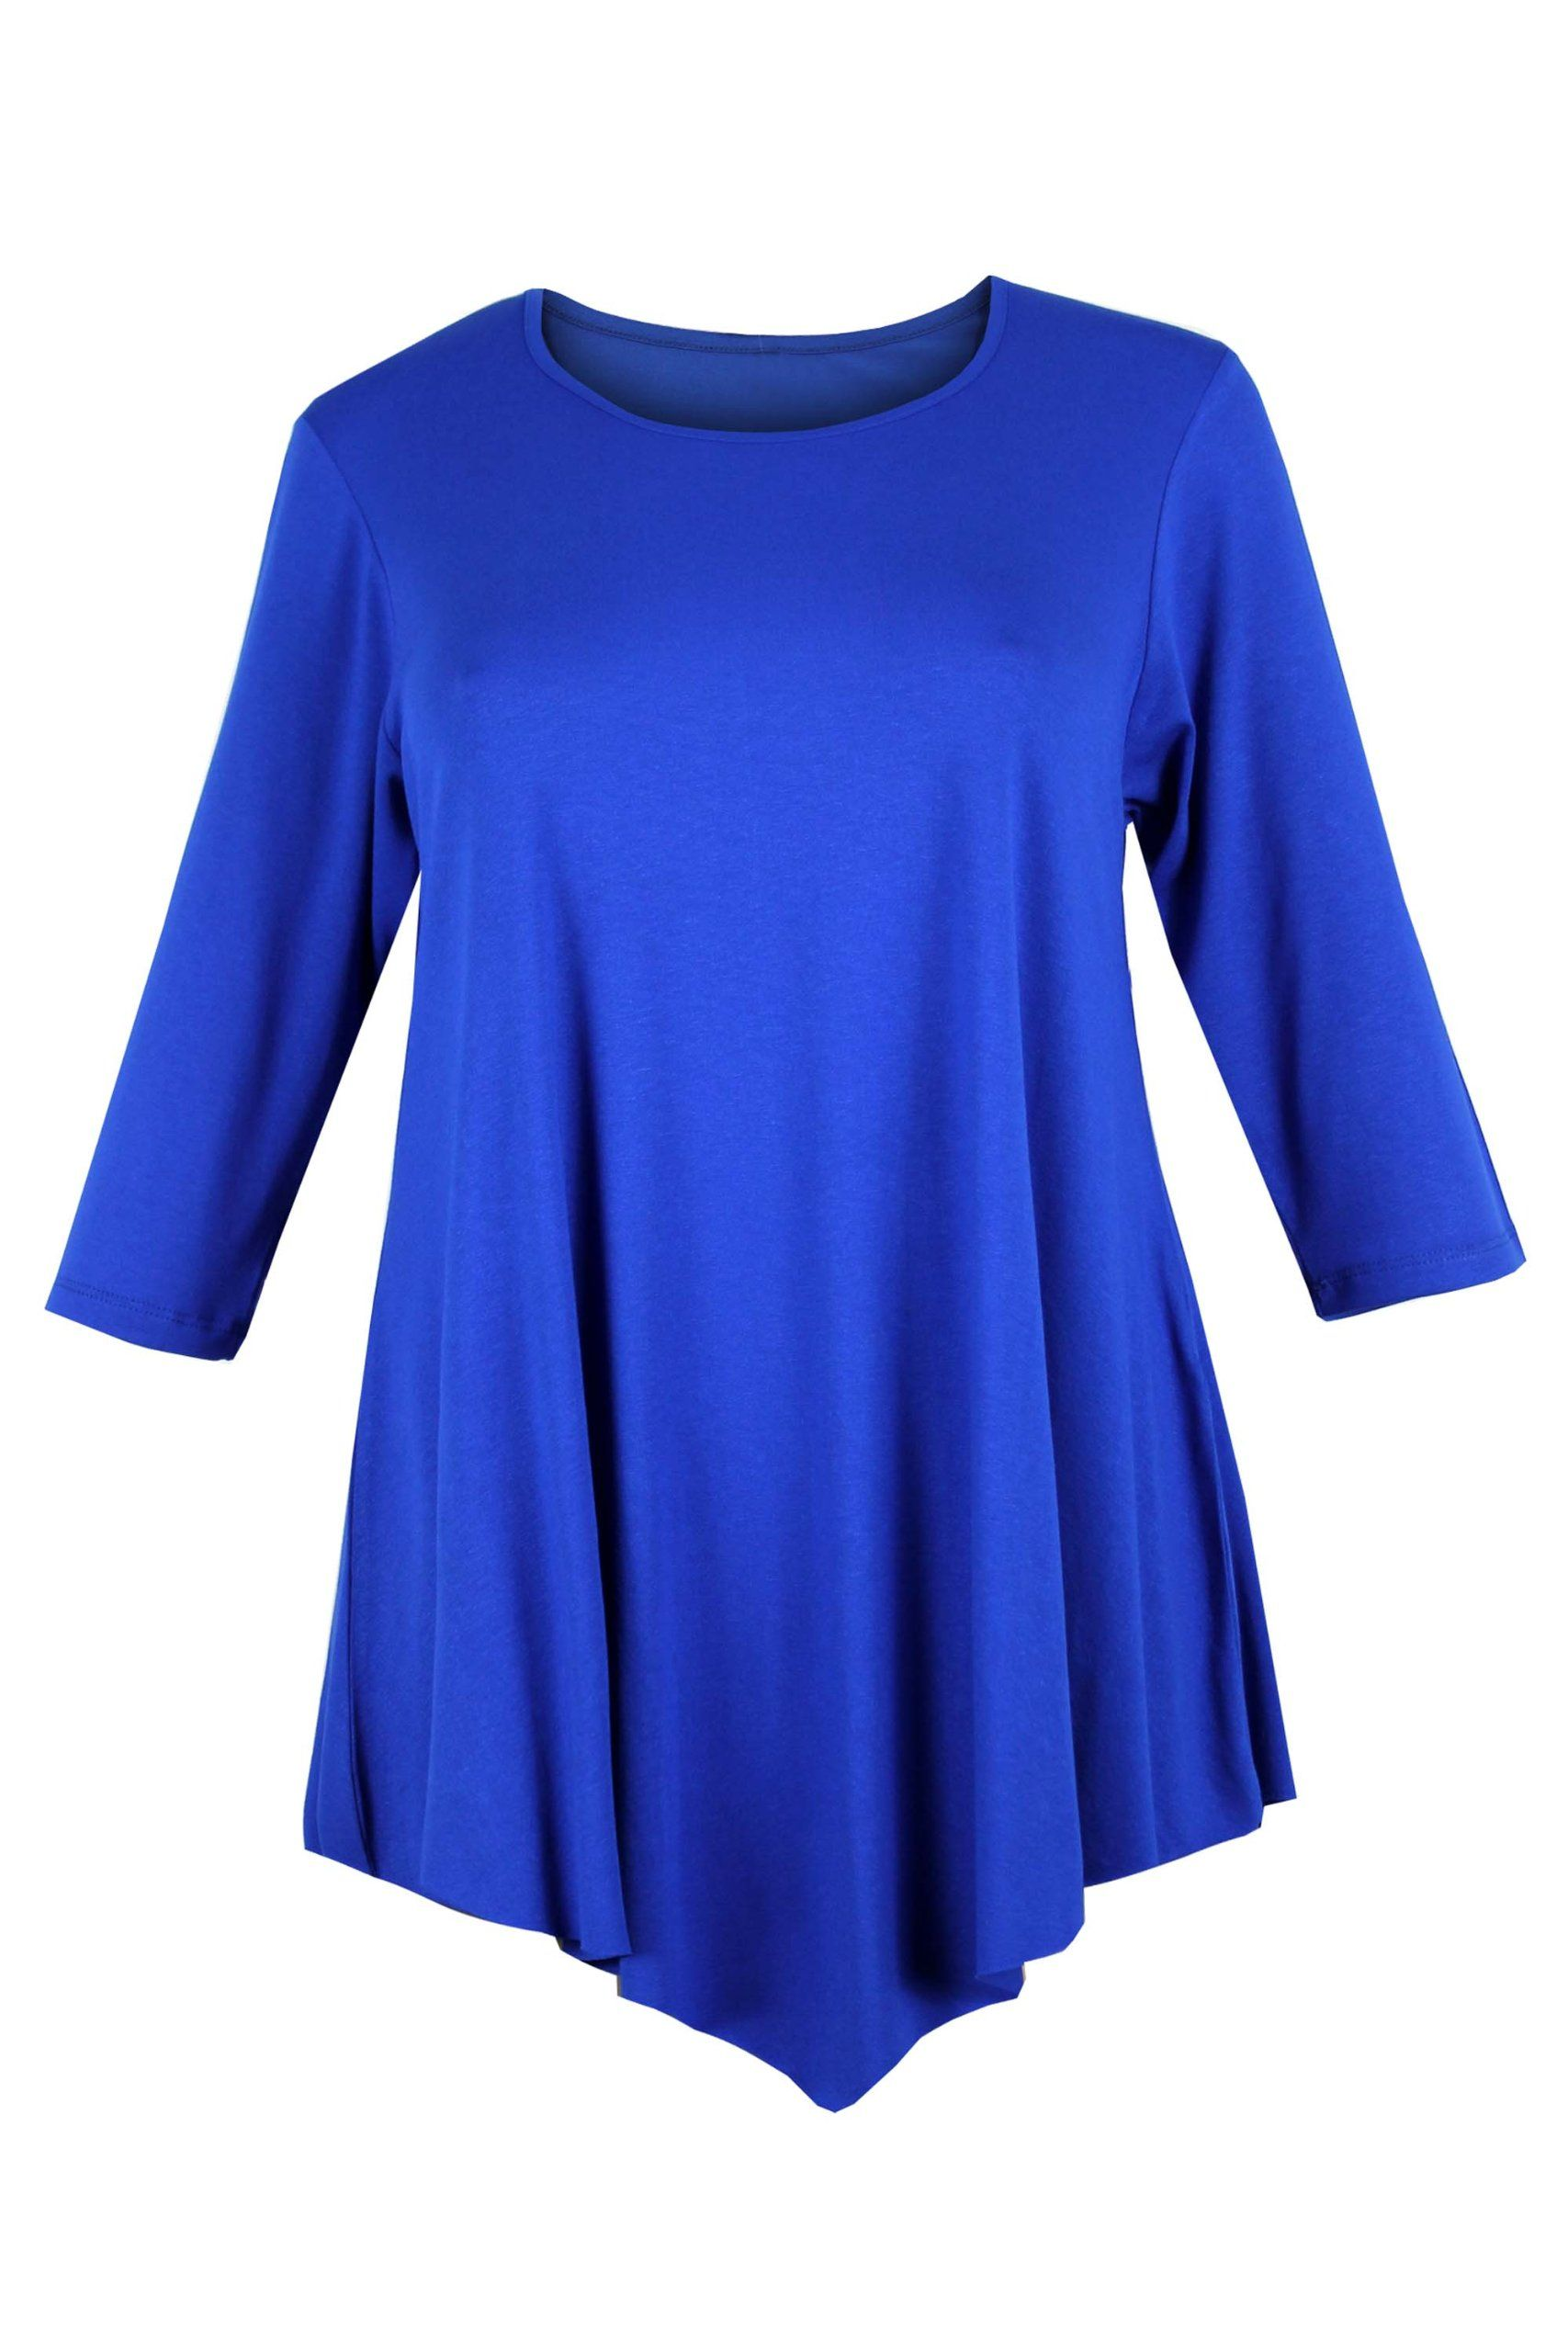 3ca9c339a2e Curvylicious Women s Plus Size 3 4 Sleeve Round Neck Tunic Top Blue ...